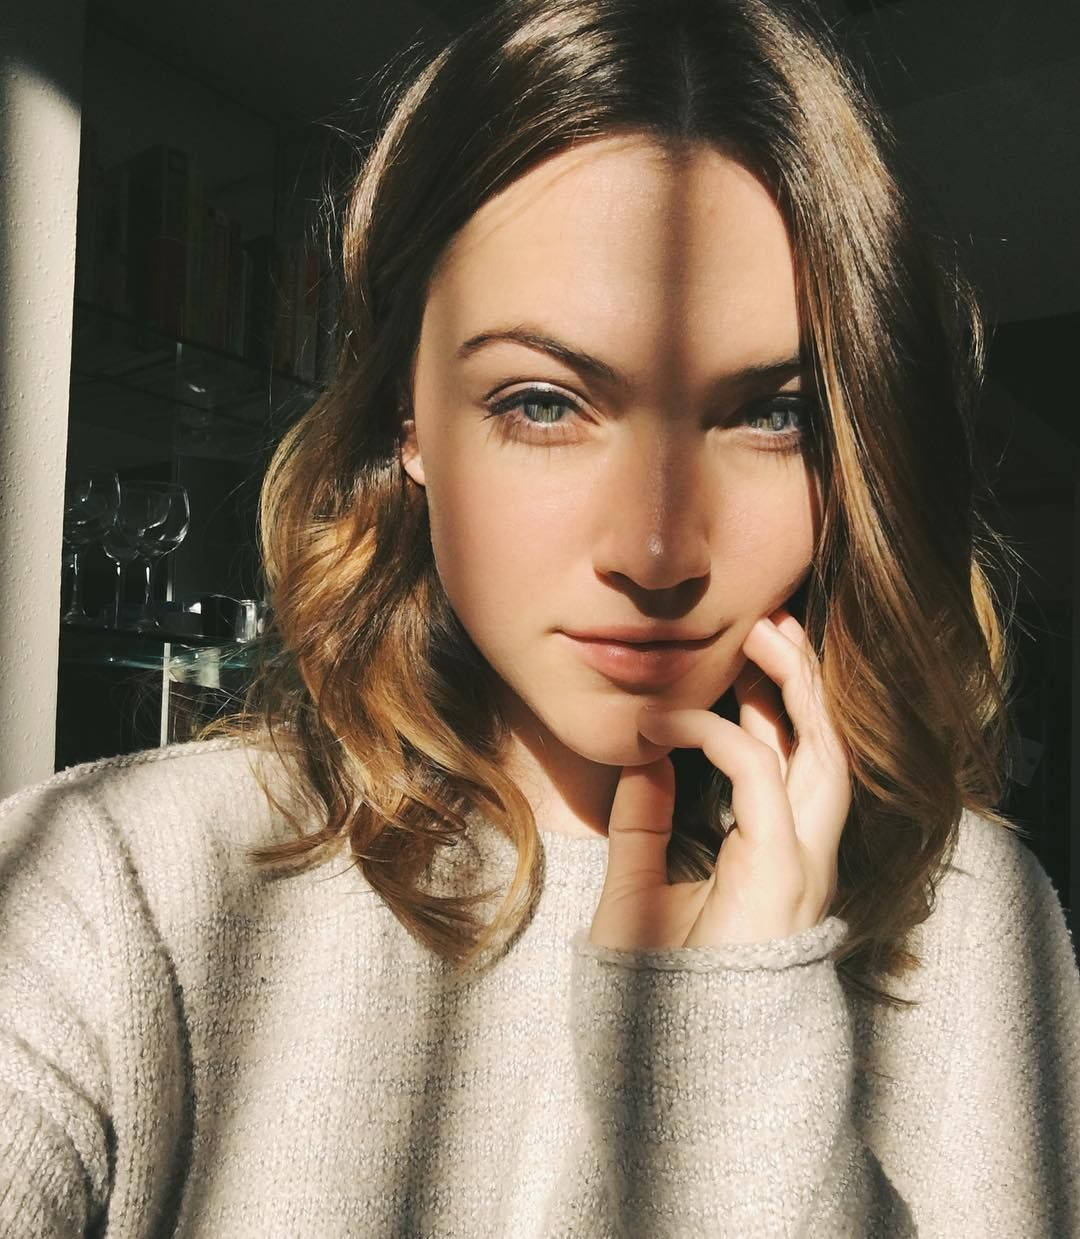 Hacked Violett Beane nudes (27 pics), Topless